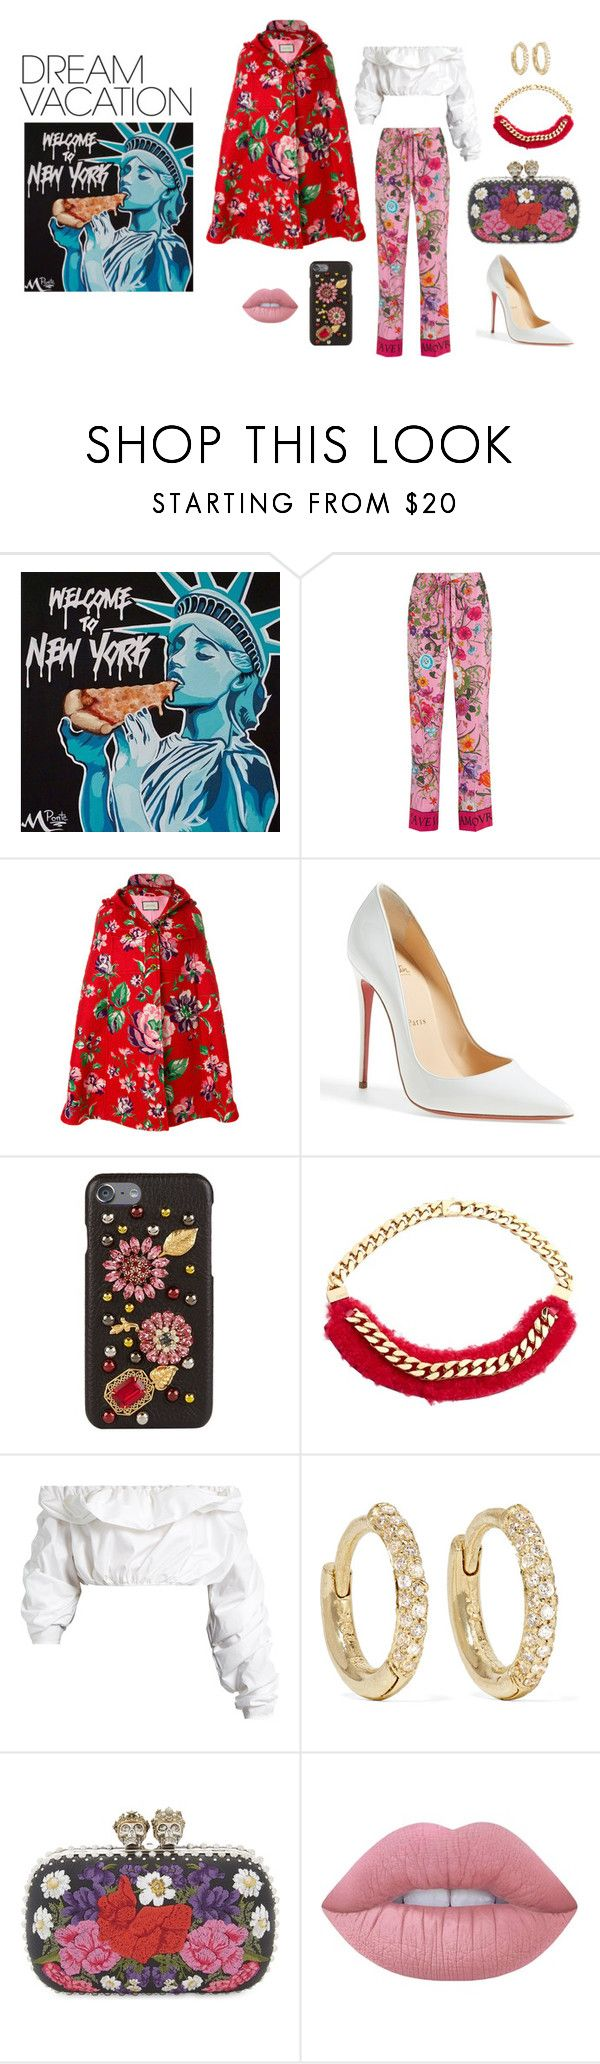 """#PolyPresents: Dream Vacation-New York"" by nabilaezan ❤ liked on Polyvore featuring Gucci, Christian Louboutin, Dolce&Gabbana, Fendi, E L L E R Y, Jennifer Meyer Jewelry, Alexander McQueen, Lime Crime, contestentry and polyPresents"